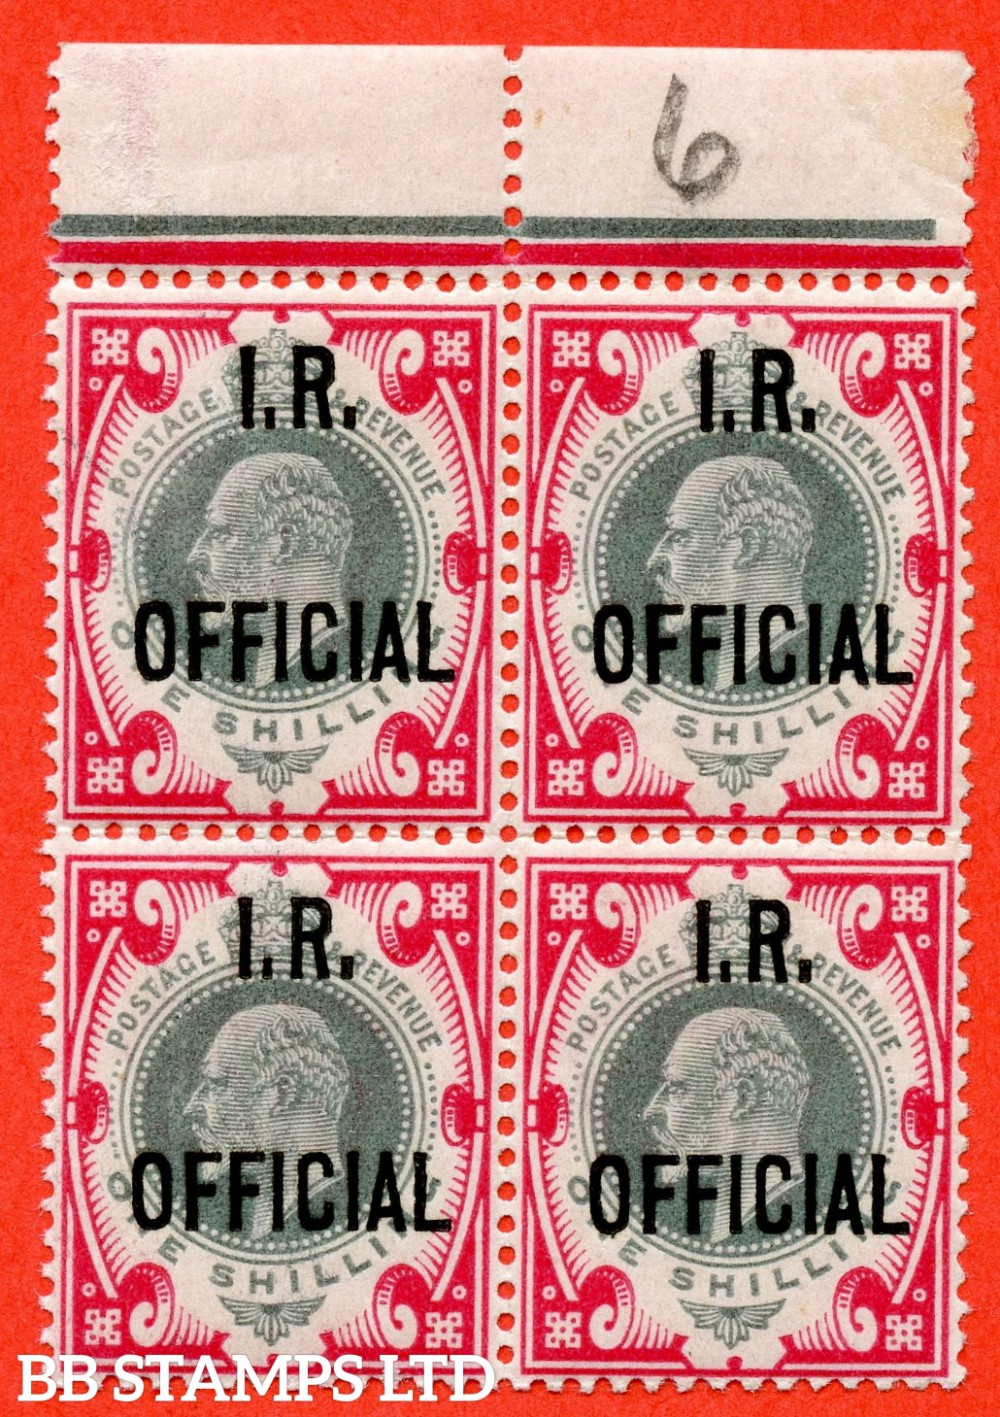 SG. 024. MO5. 1/- dull green and carmine. I.R.Official. A very fine UNMOUNTED MINT top marginal block of 4 of this very scarce official. Complete with BPA certificate. A RARE multiple.